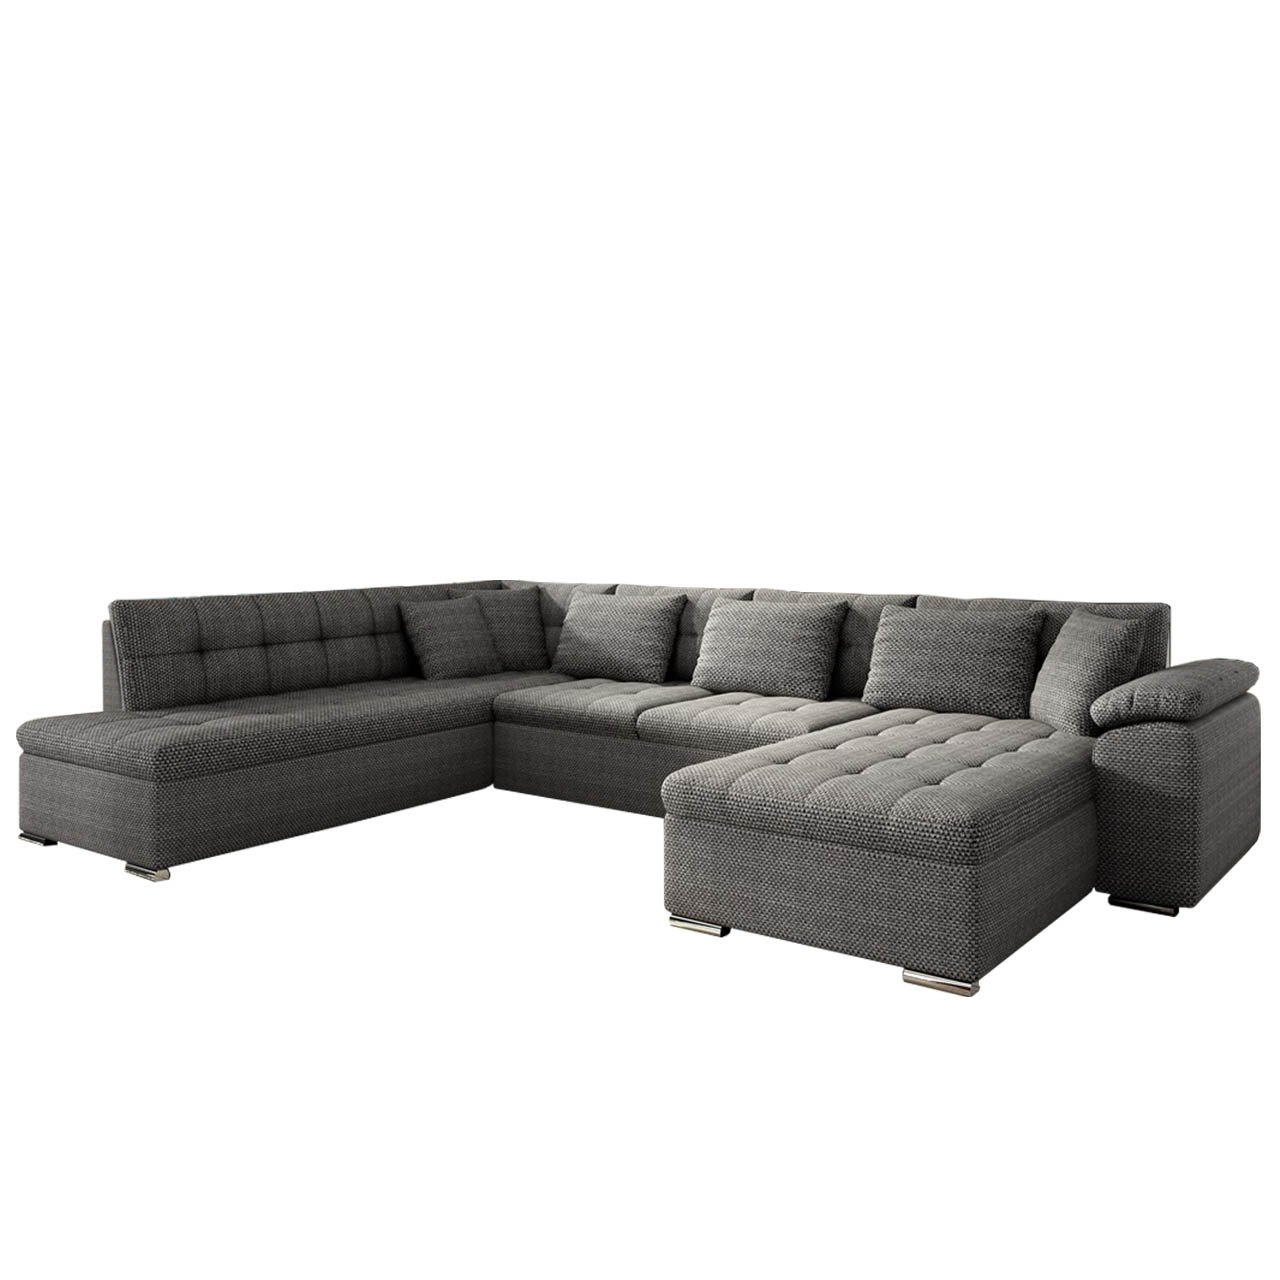 eckcouch ecksofa niko bis design sofa couch mit schlaffunktion und bettkasten u sofa gro e. Black Bedroom Furniture Sets. Home Design Ideas